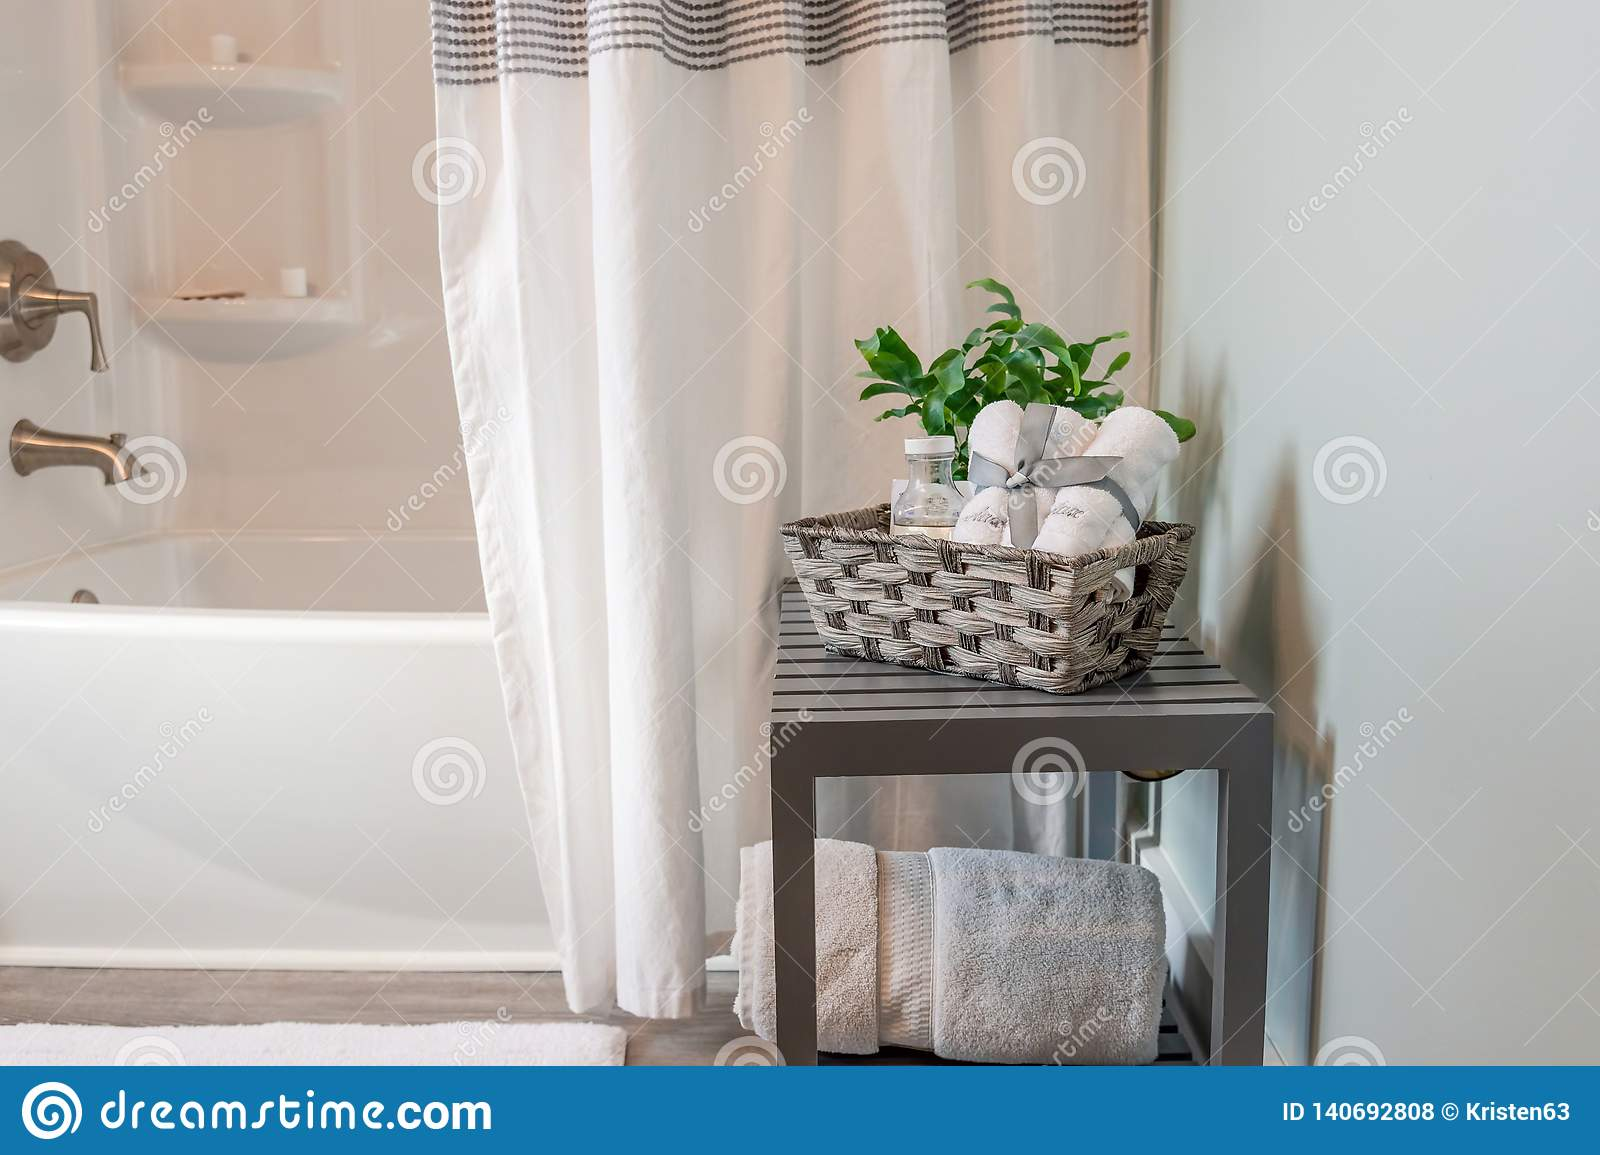 Clean And Bright Bathroom Decor In Gray And White Stock